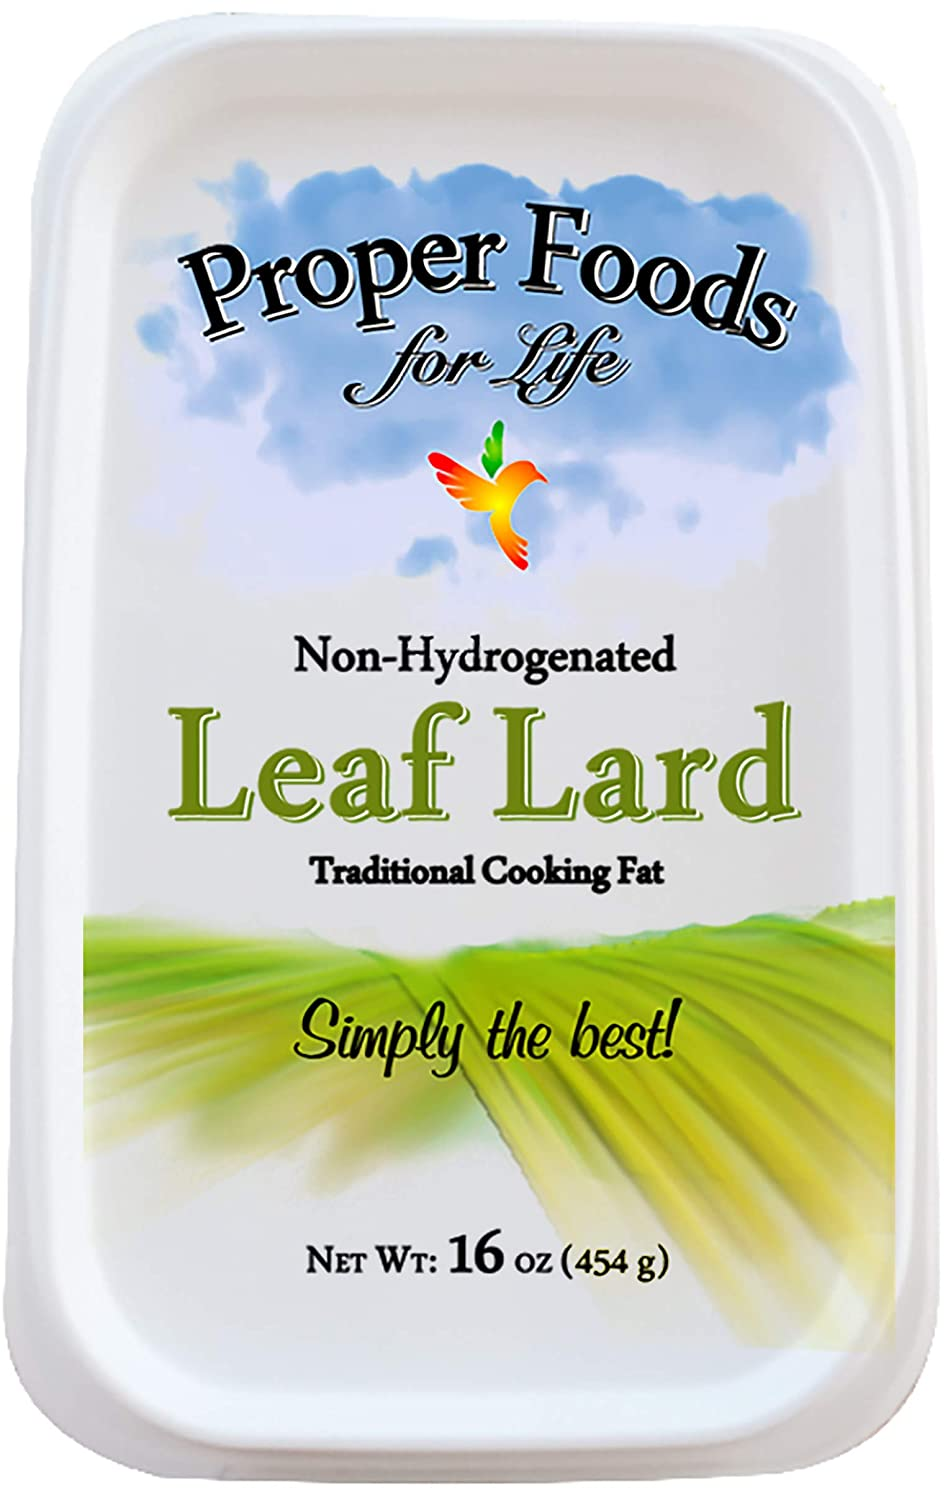 Pure lard (for frying)